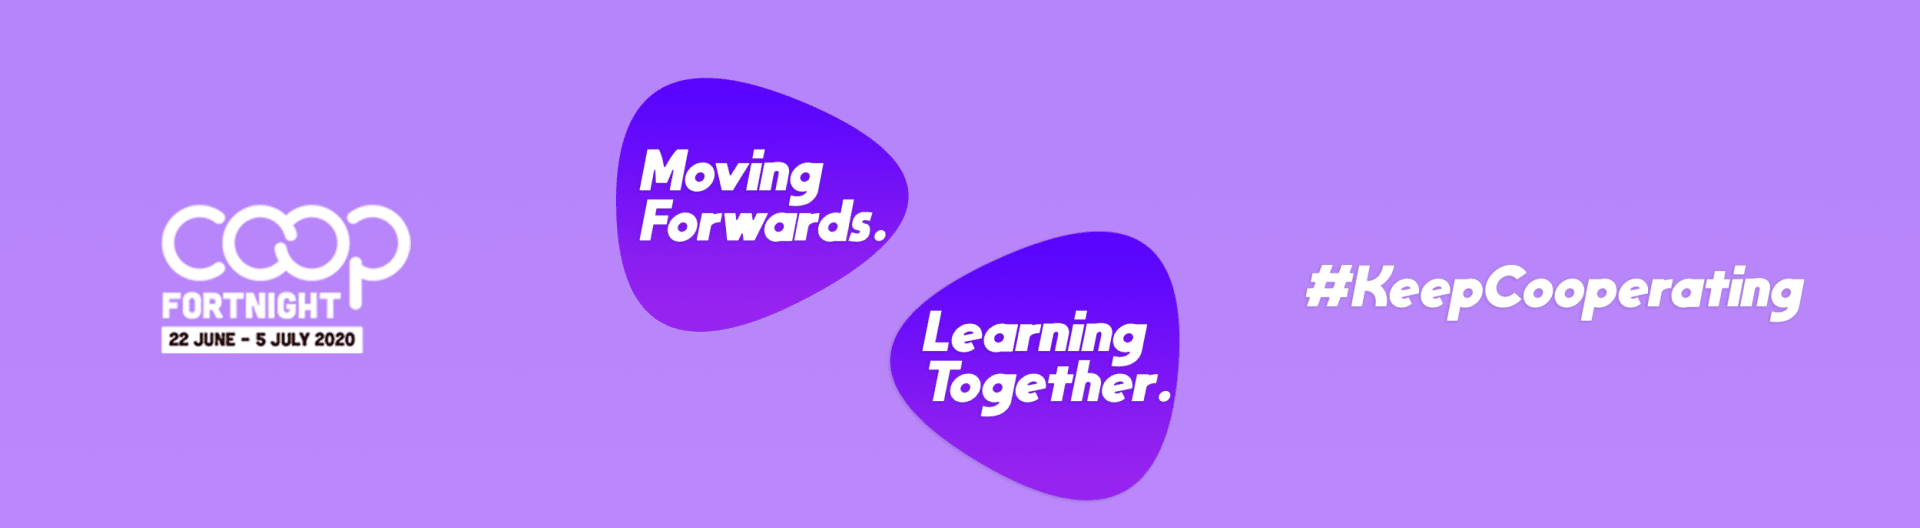 Moving Forwards. Learning Together. New Digital Experience Brings Co-operative Education to a Wider Audience